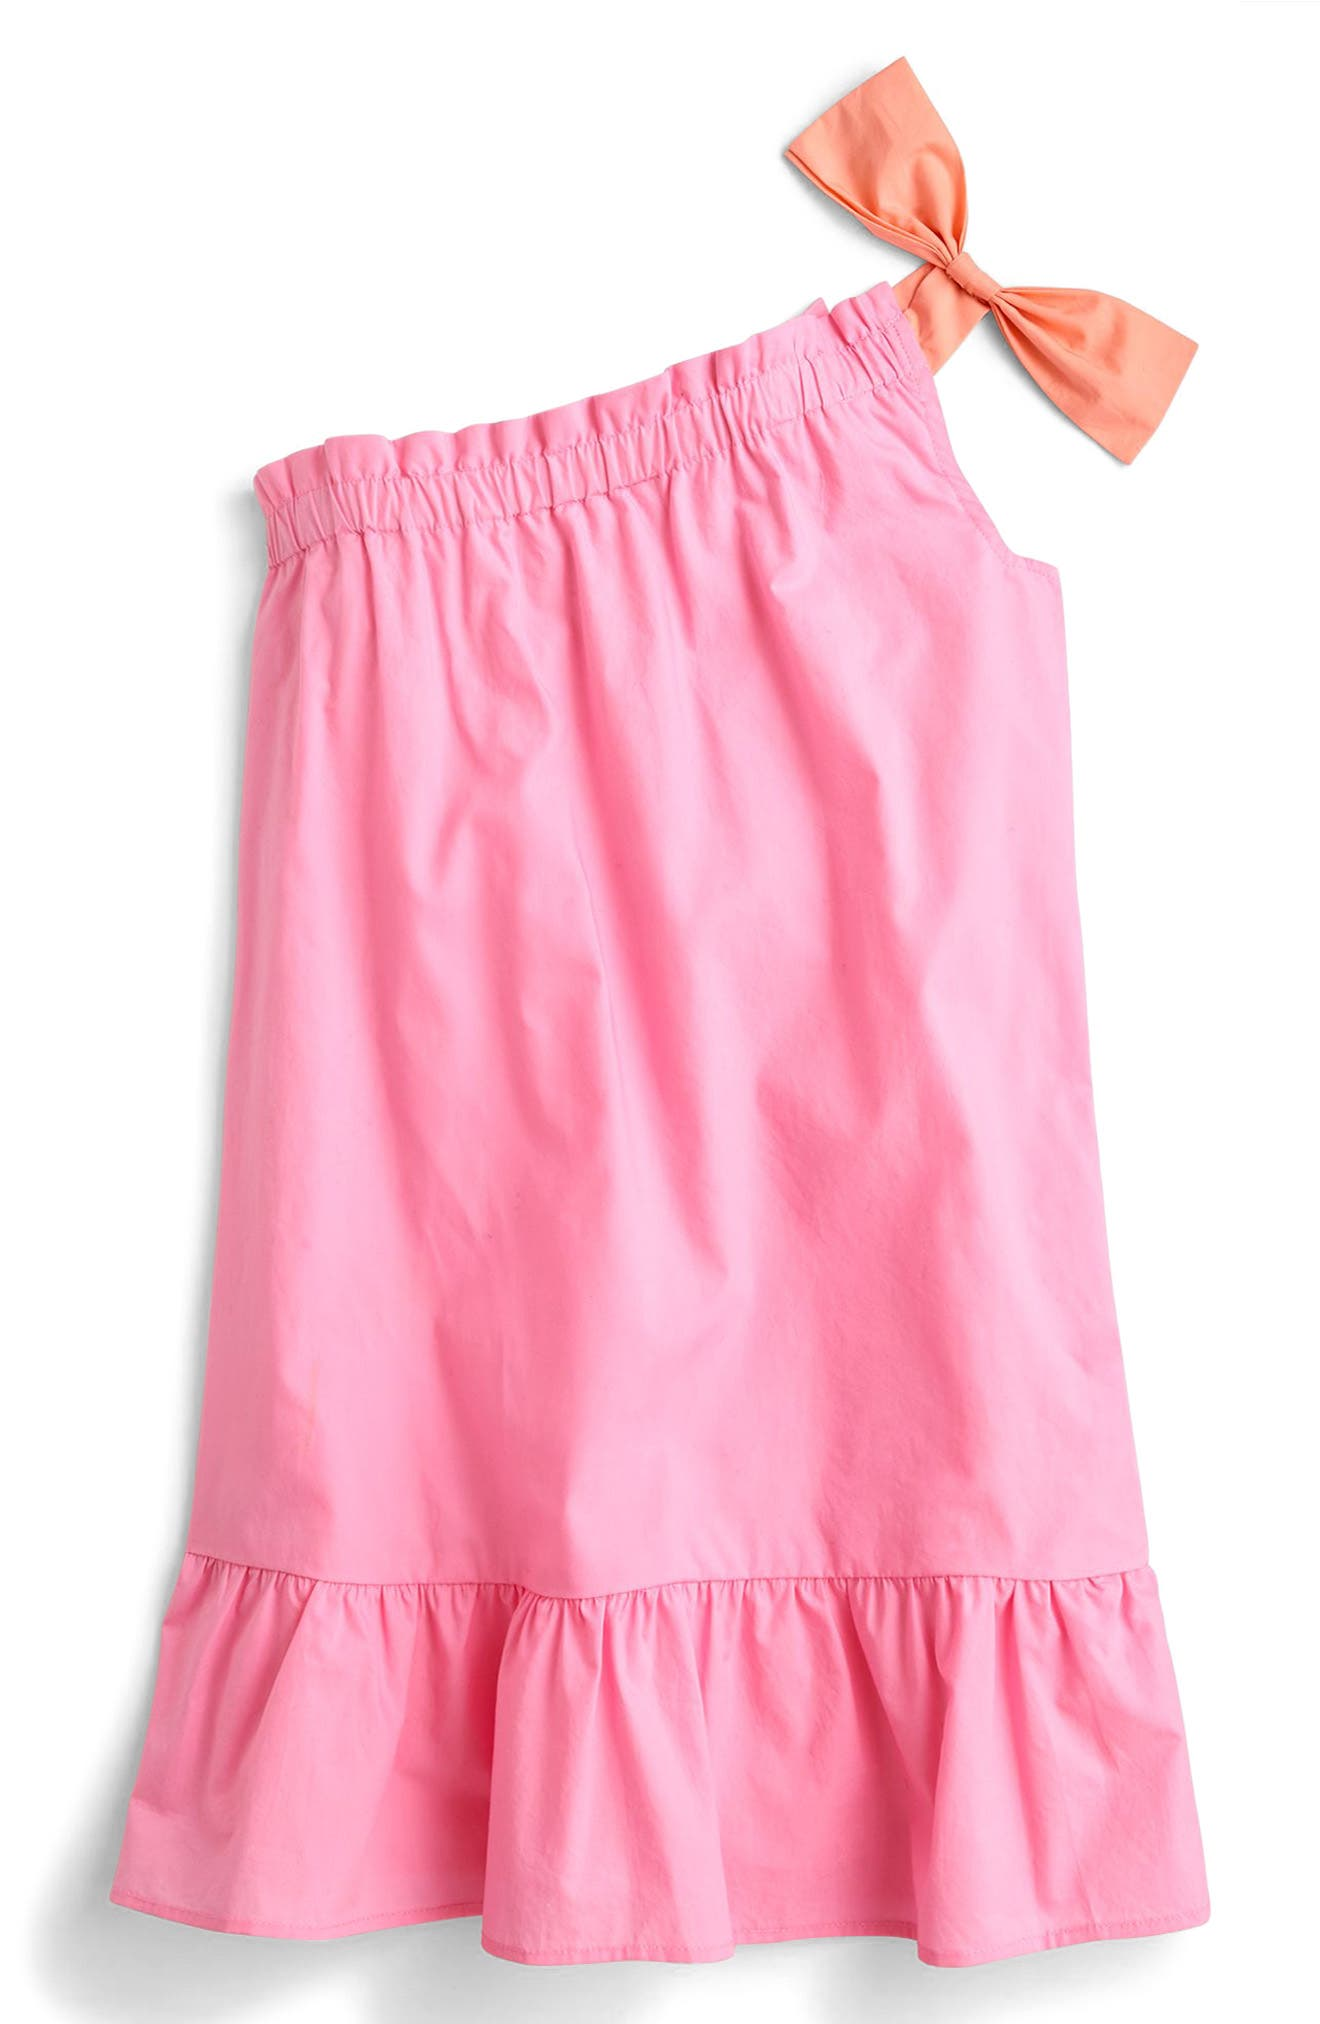 crewcuts by J. Crew Calpurnia One-Shoulder Dress (Toddler Girls, Little Girls & Big Girls)